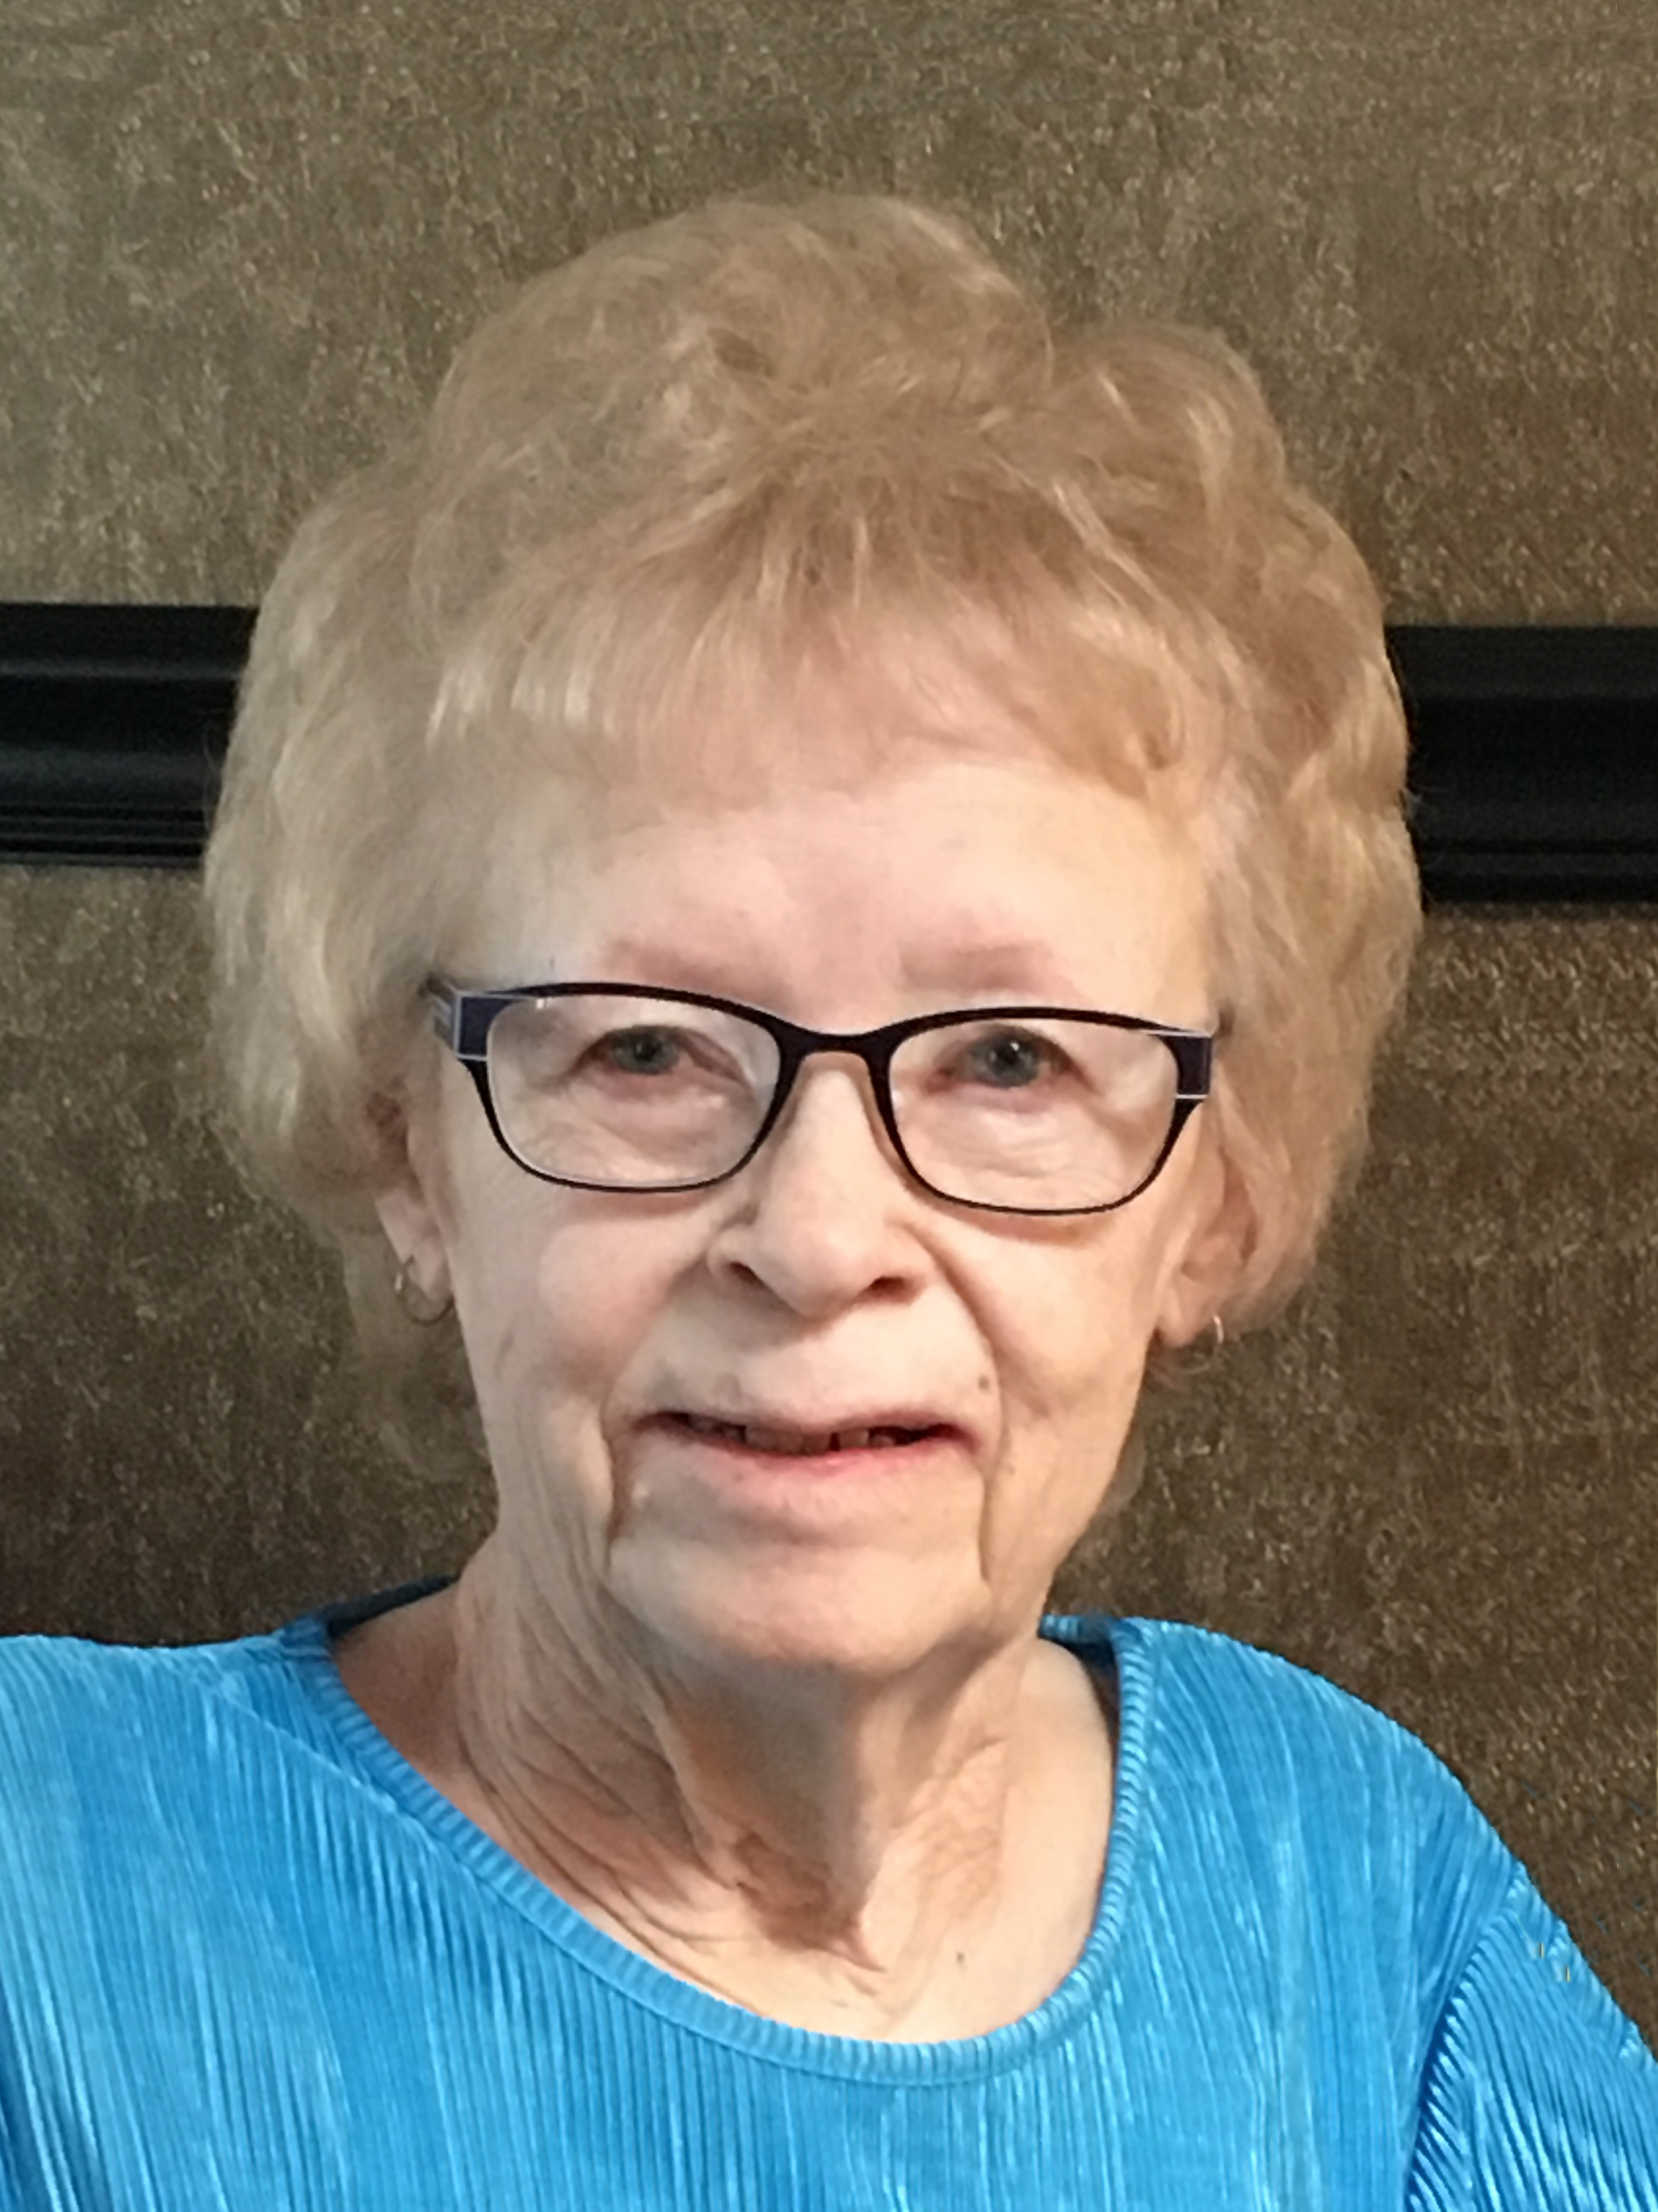 When It All Came Together At Tiedemans >> Obituary Of Mona Marie Tiedeman Welcome To Heritage Funeral Home